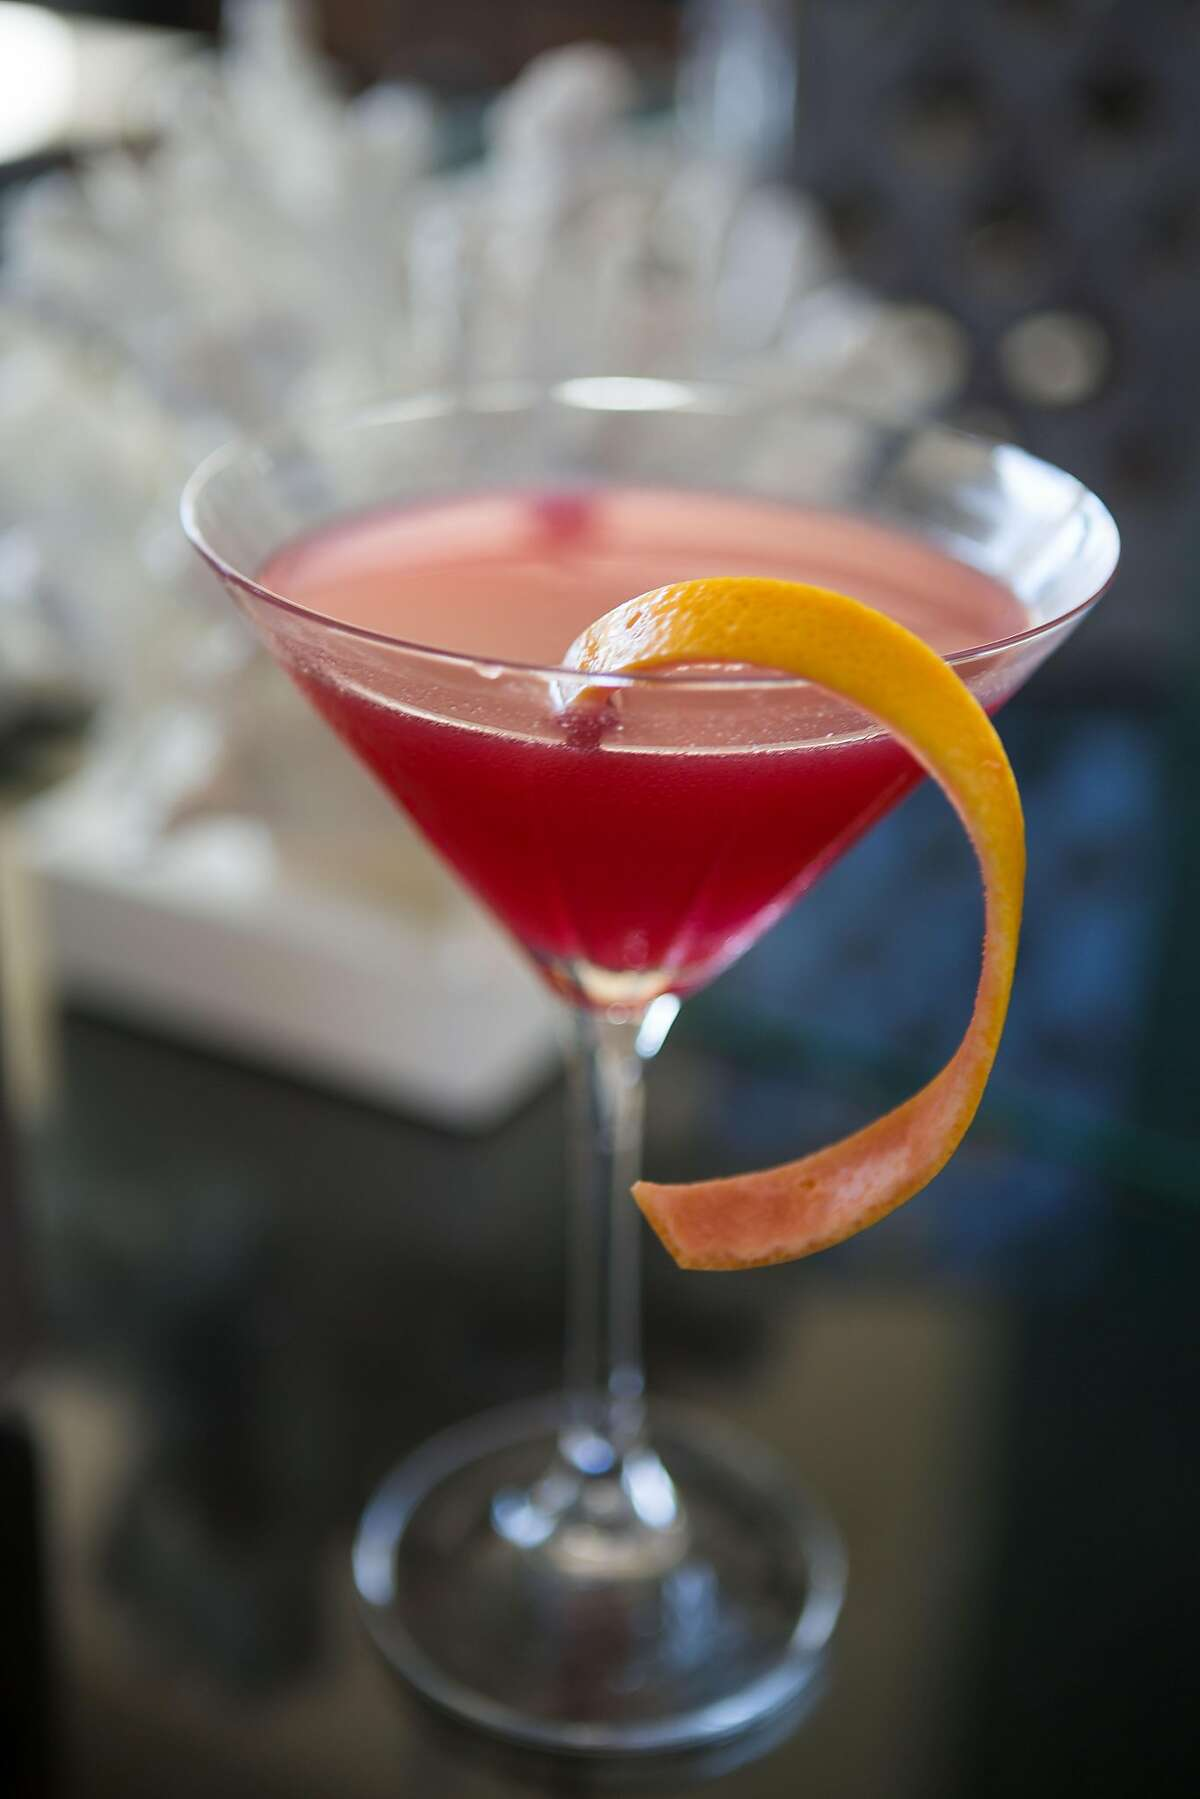 Cocktails Luana Lounge Makalapua: The newly revamped cocktail menu at the Fairmont Kea Lani�s Luana Lounge includes the Makalapua: Ocean organic vodka, hibiscus-rose syrup, lemon, grapefruit and lavender bitters. Credit: Pacific Dream Photography